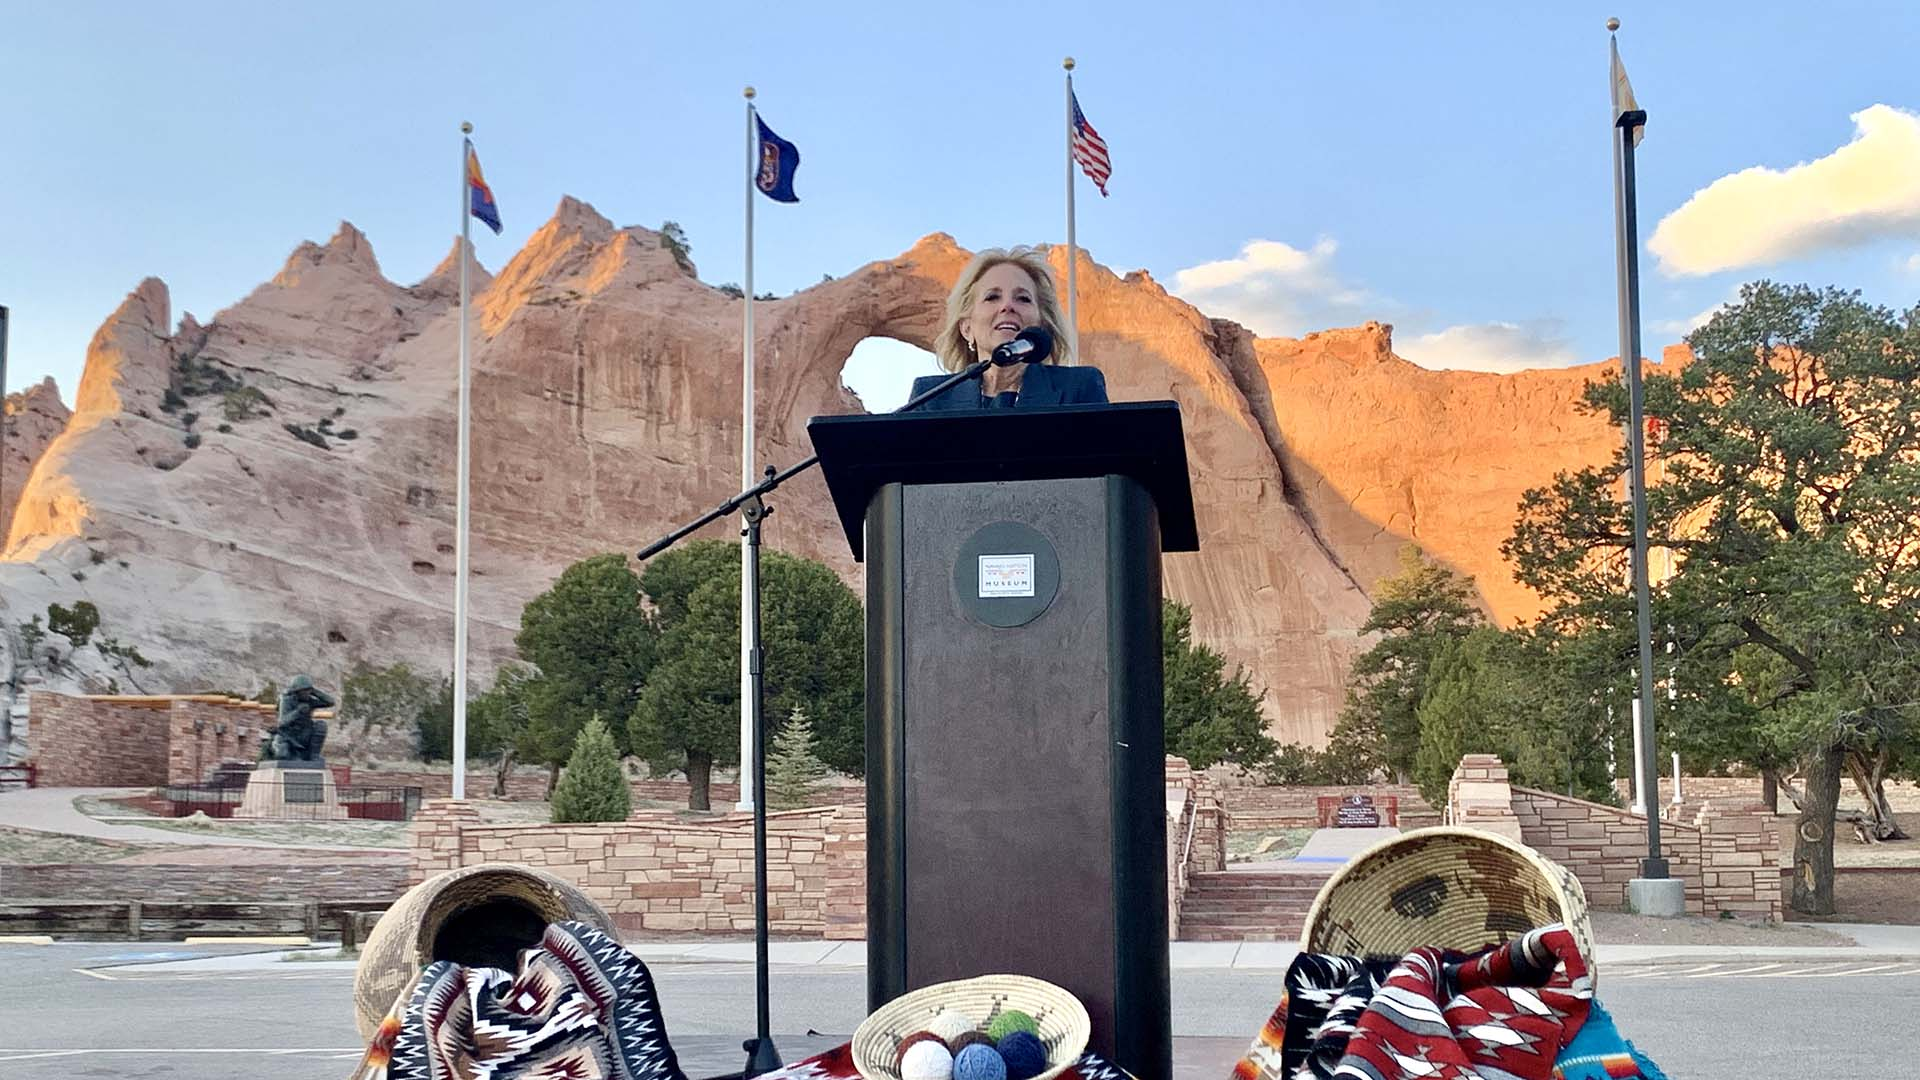 First Lady Dr. Jill Biden travels to Window Rock, Arizona, within the Navajo Nation April 22-23, 2021, to learn about the needs of the tribal nation.